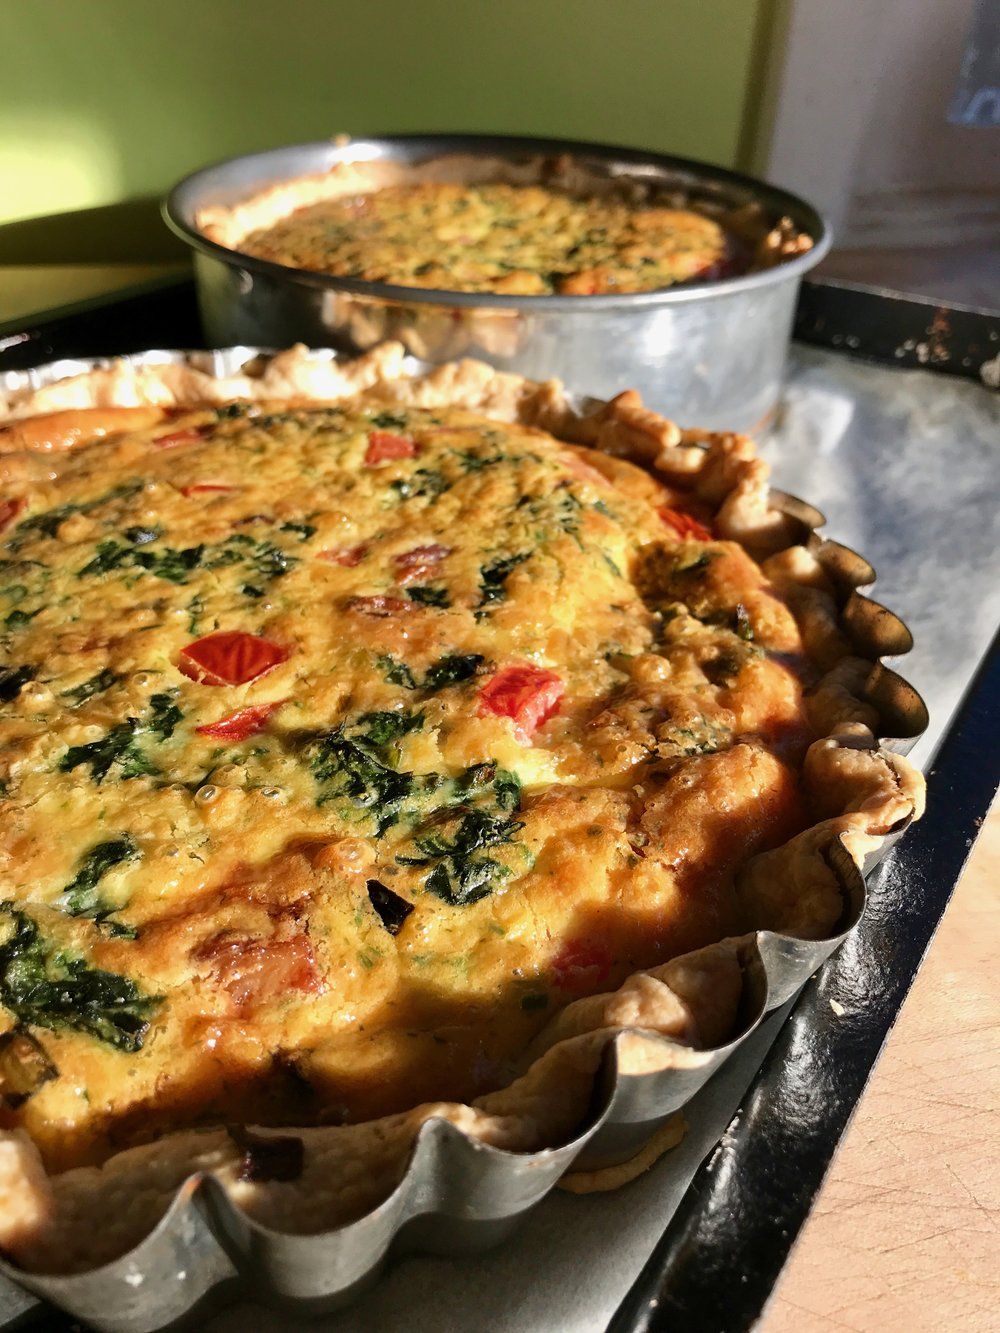 Tale of Two Quiches - Roasted Vegetable Quiche and AppleWood Bacon Quiche